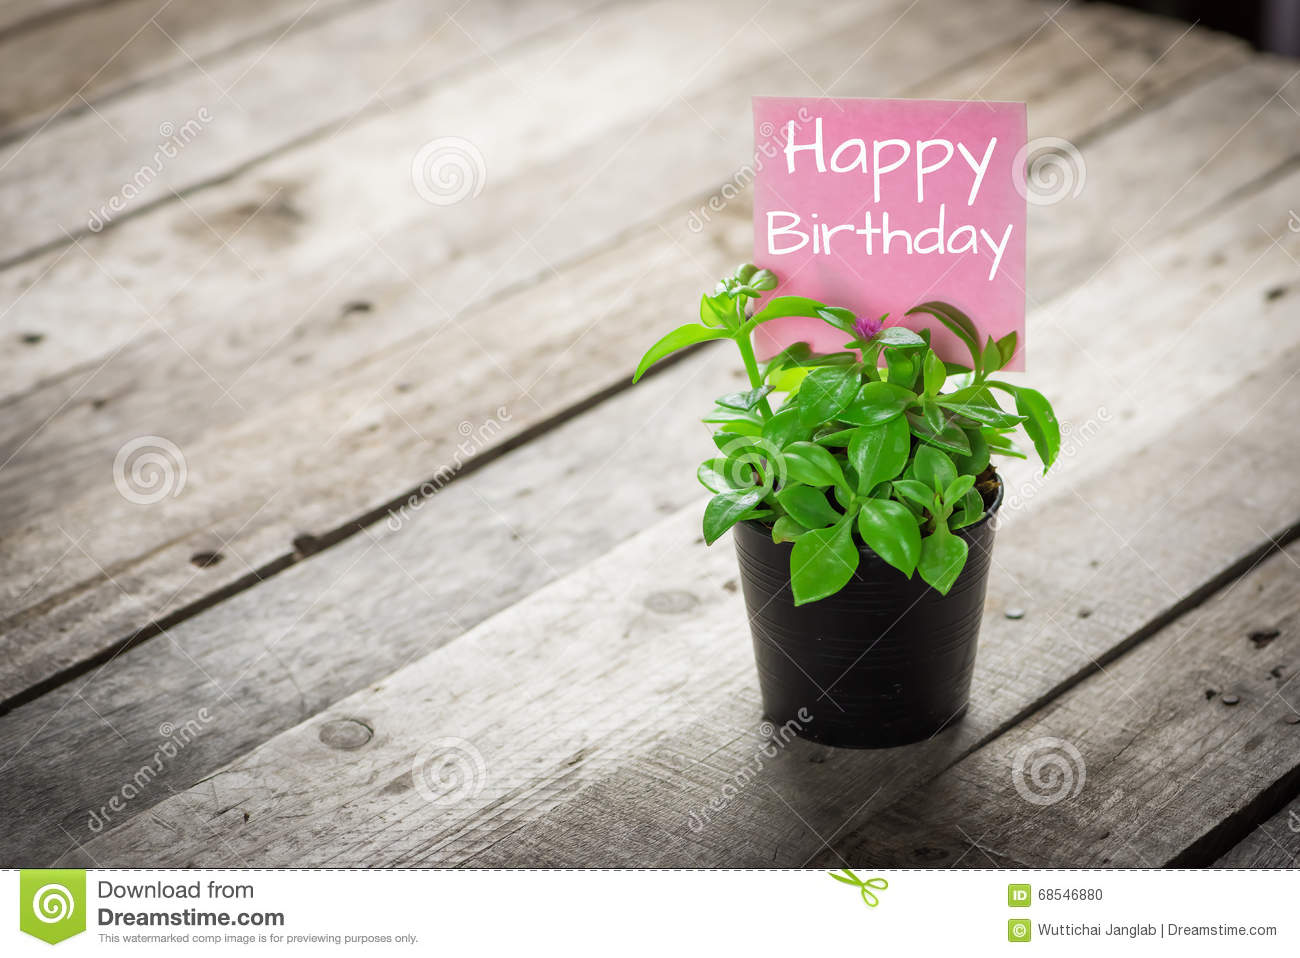 Writing Happy Birthday On Card And Ornamental Plants In Pots